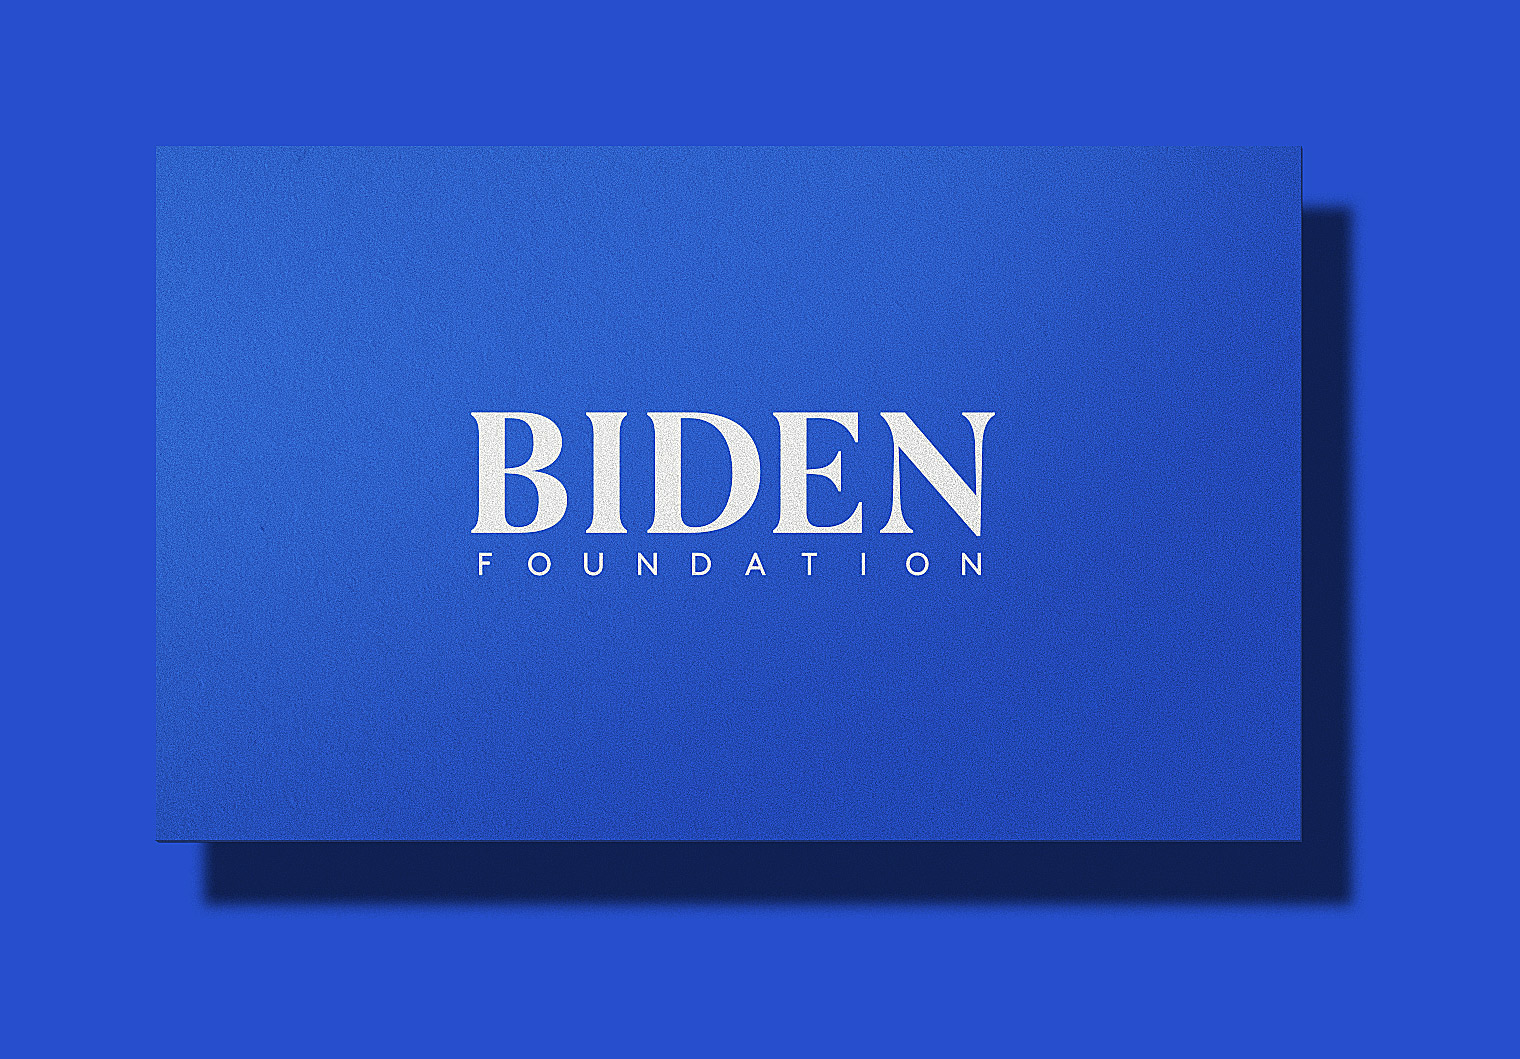 Biden Foundation Logo & Brand